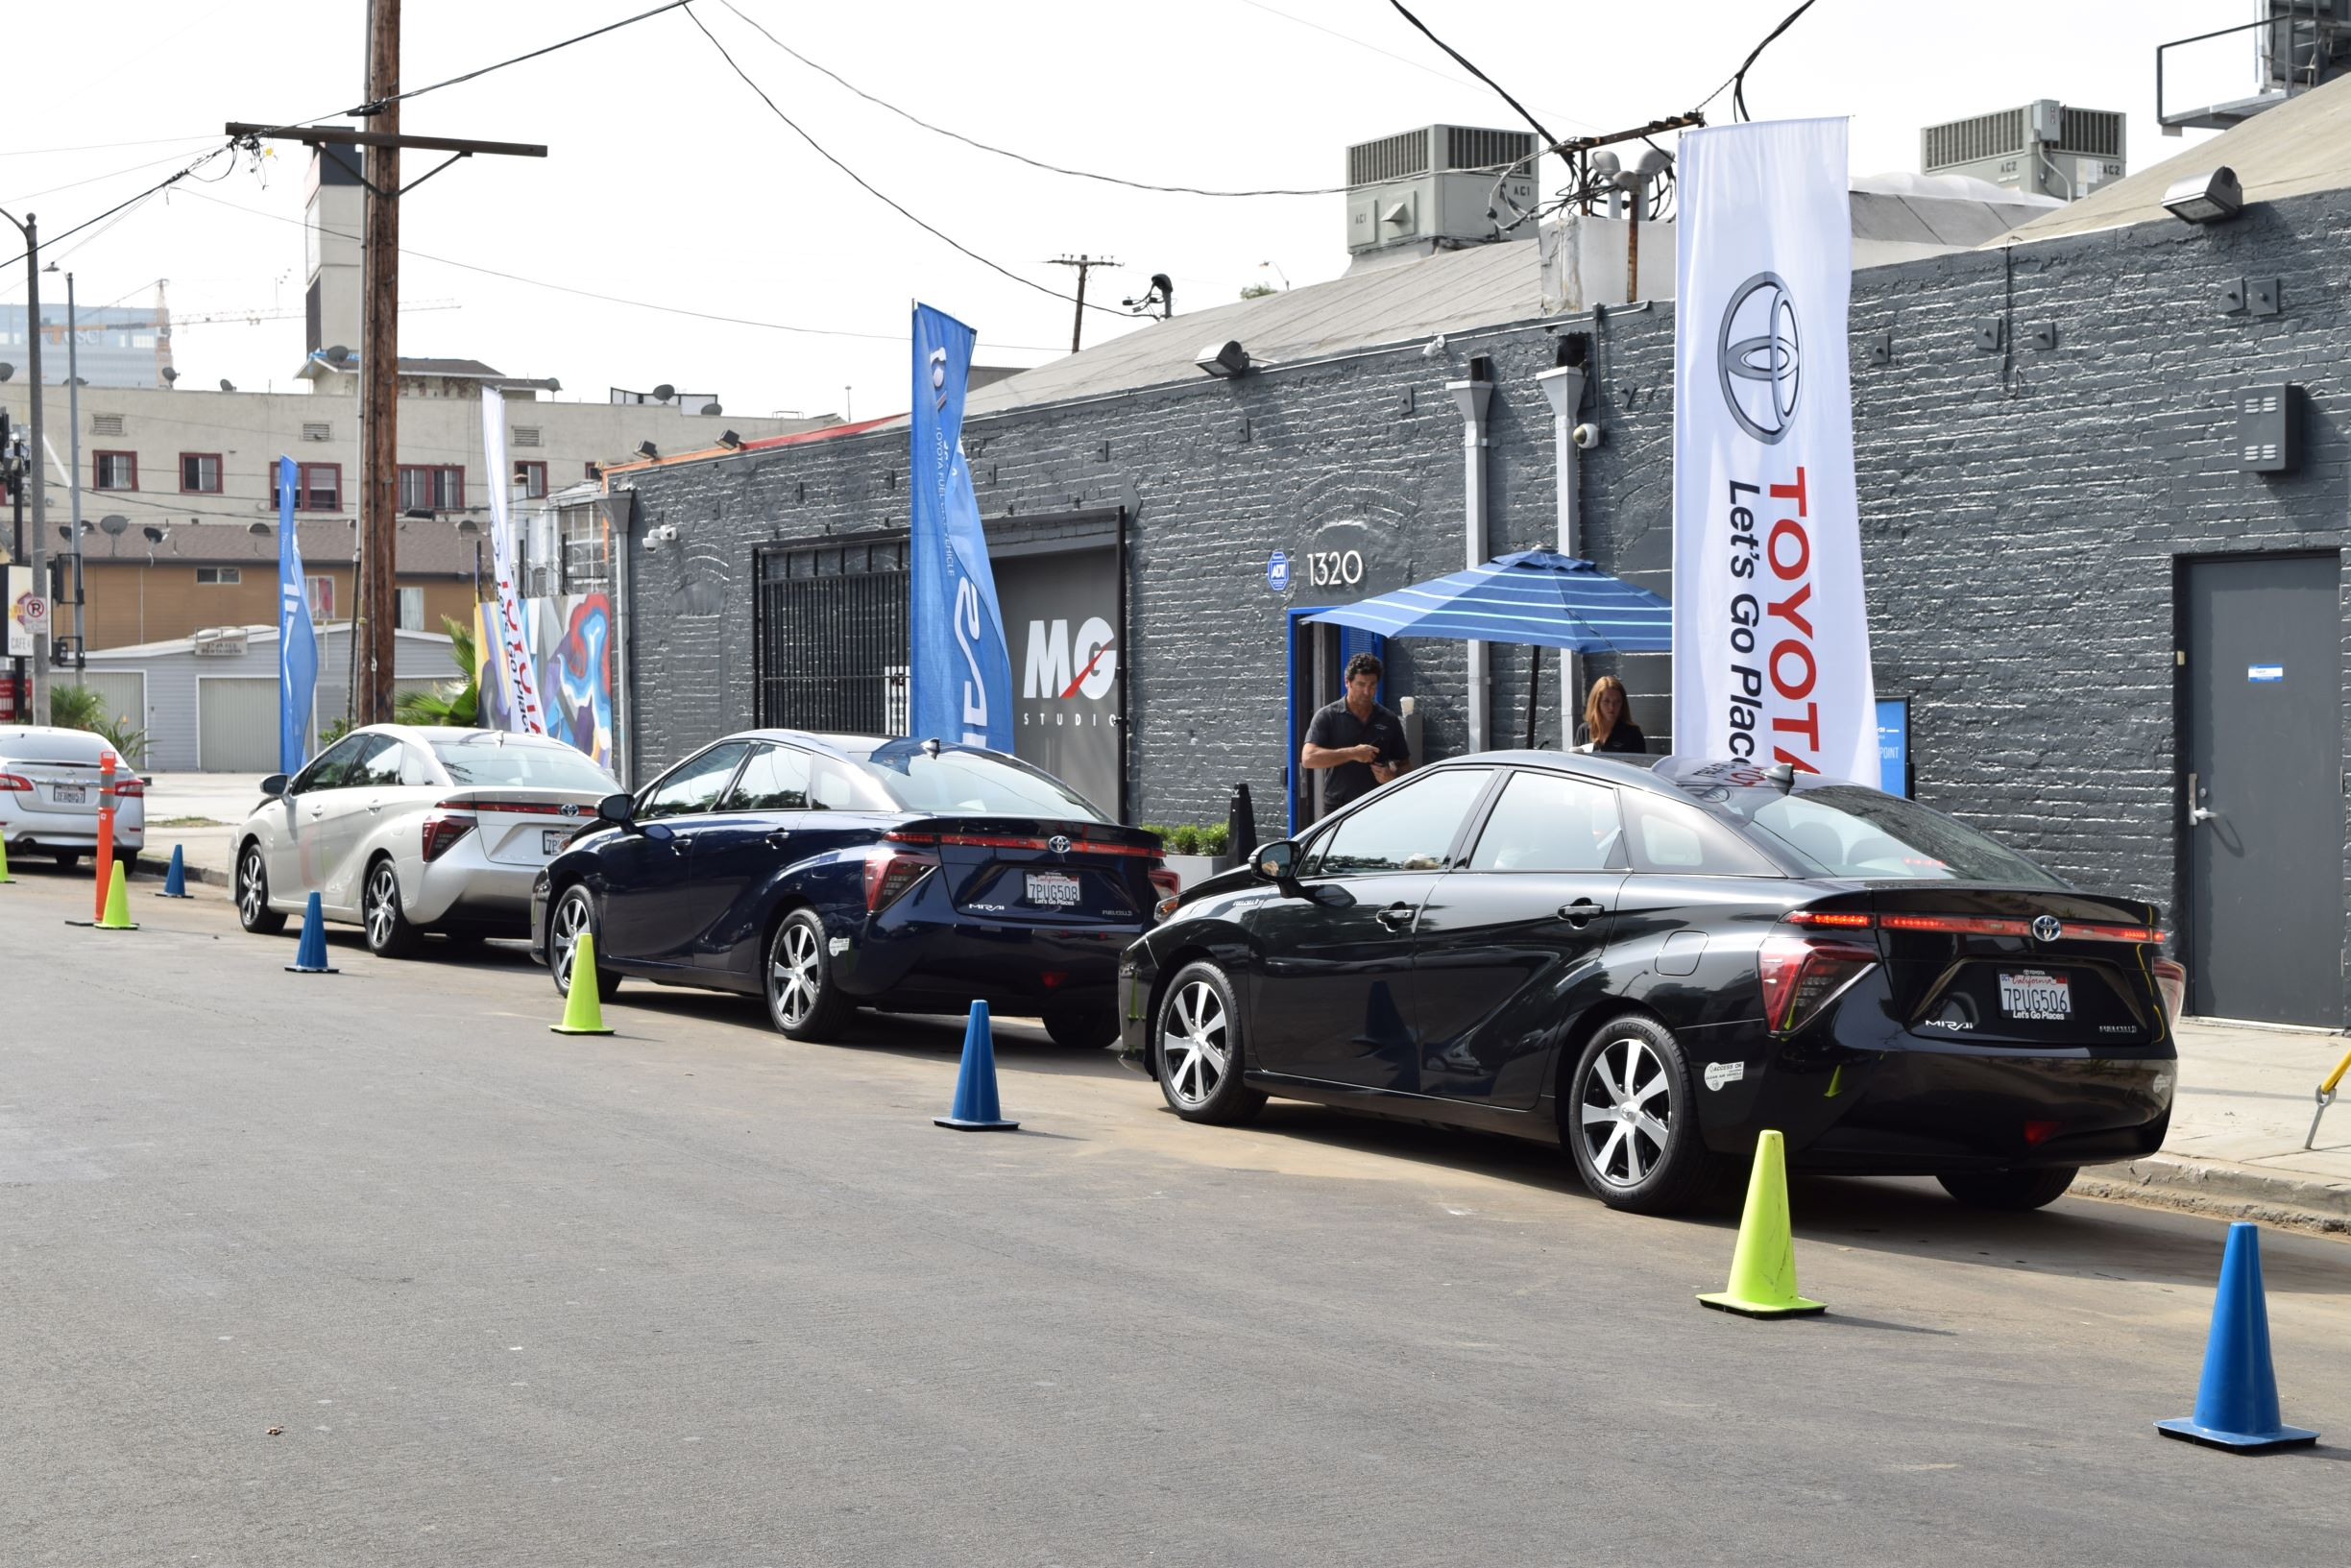 Toyota Mirai Conumer Event Ride Drive Lineup on Connecticut St. Cars